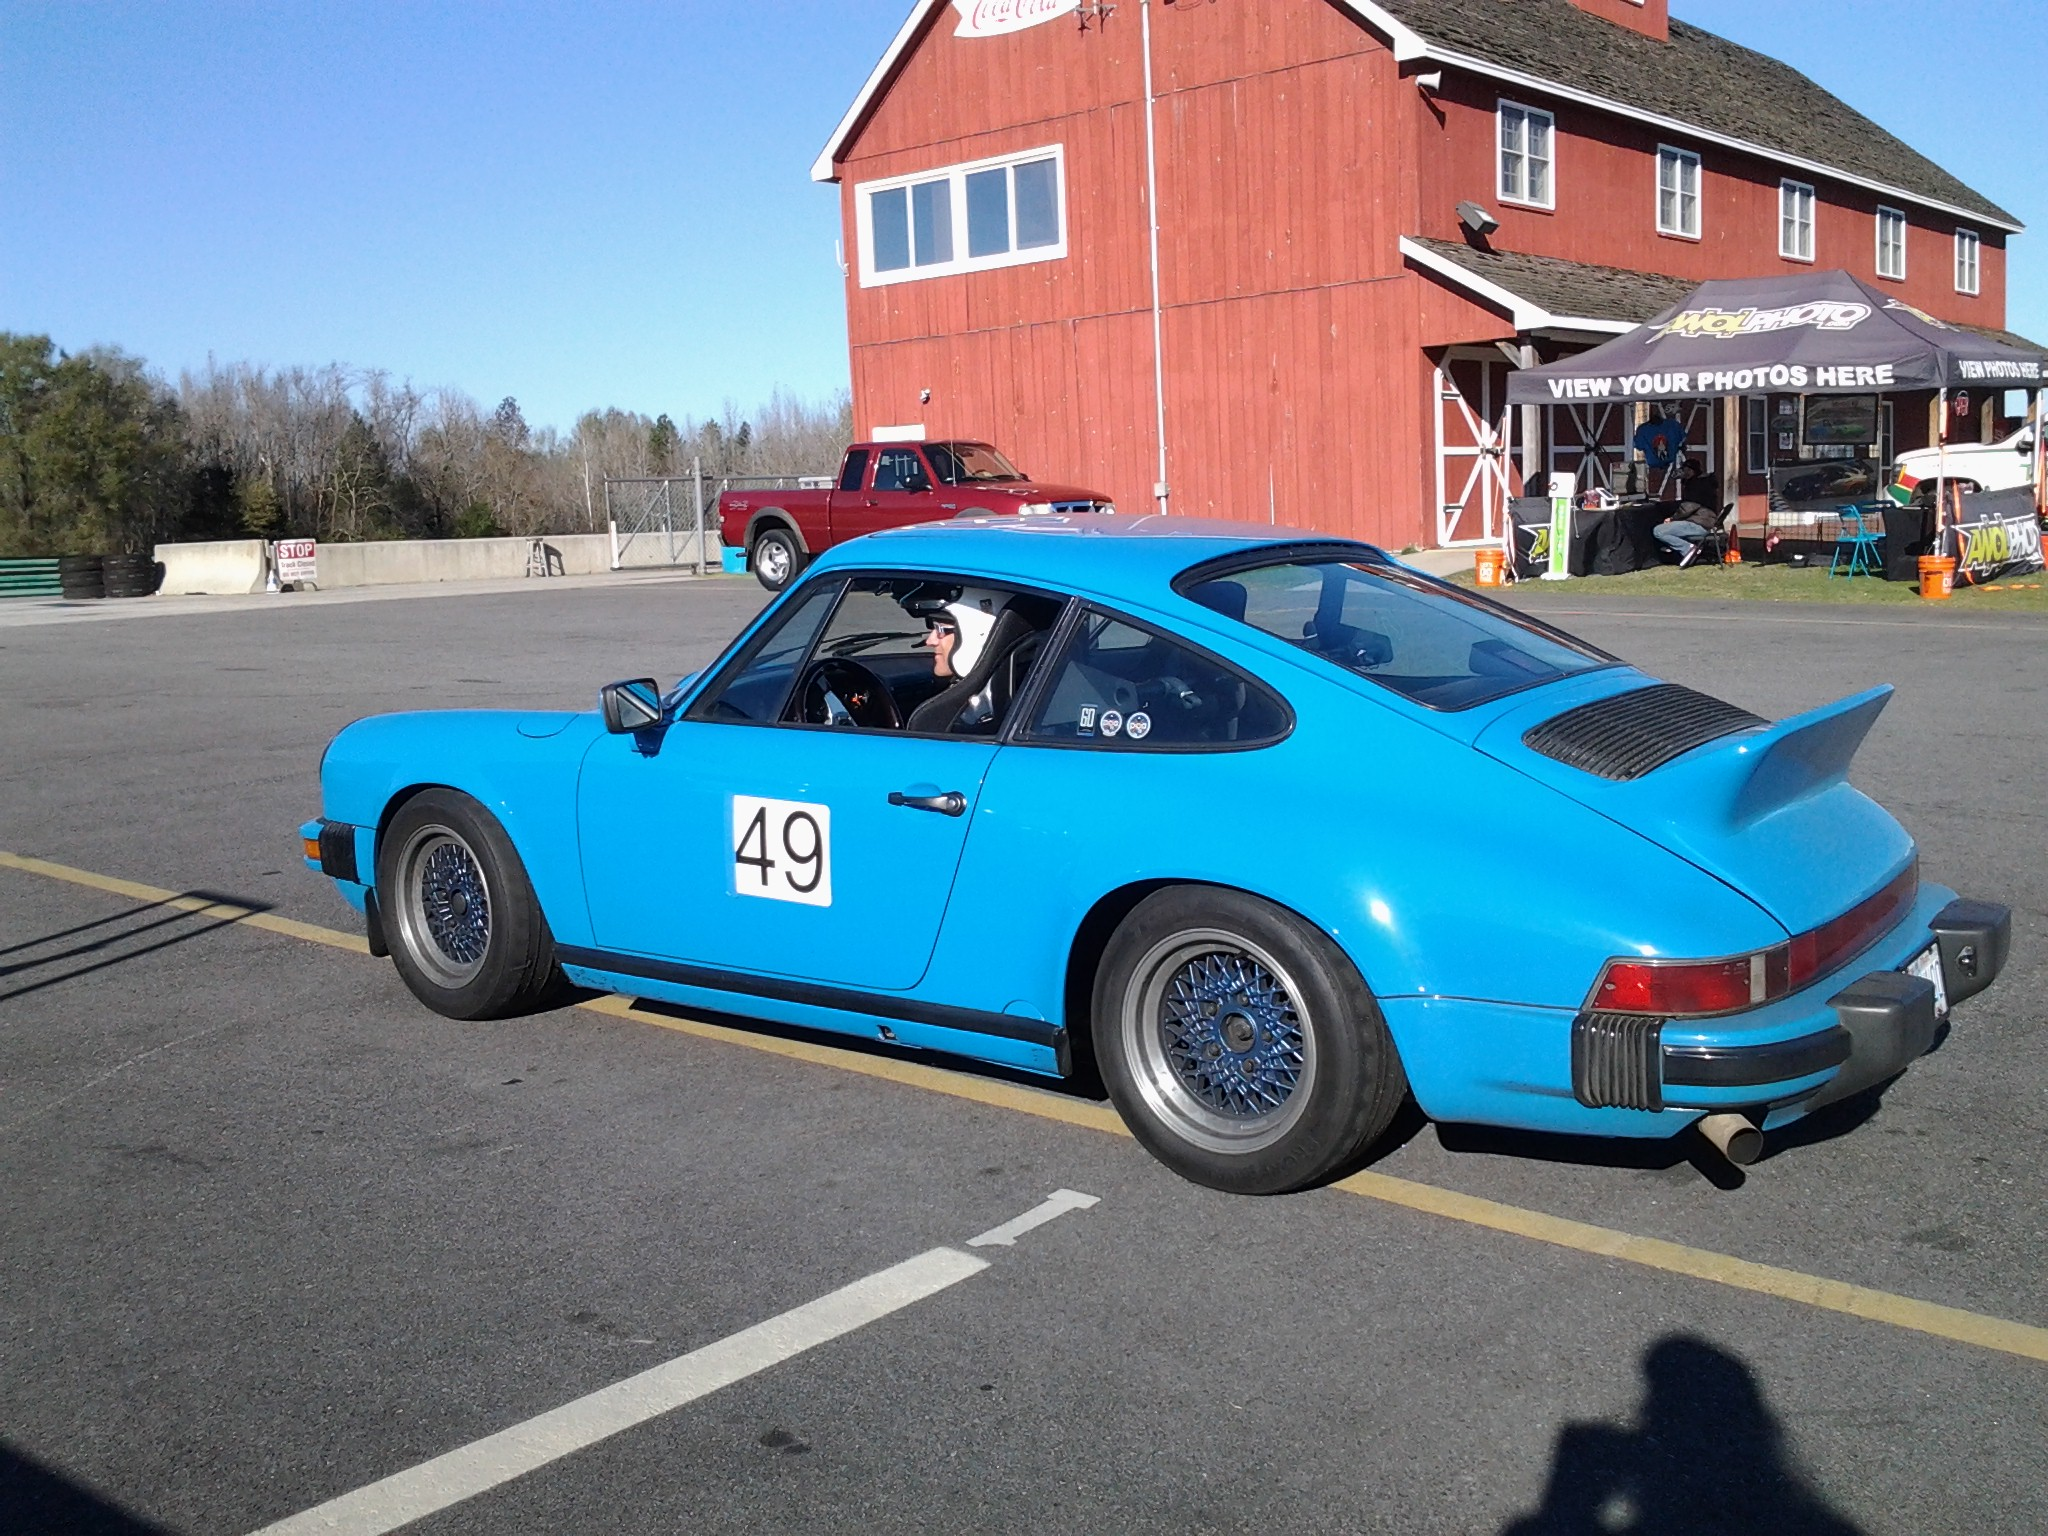 Porsche/2015 Solo and Blue/20151114_142500.jpg